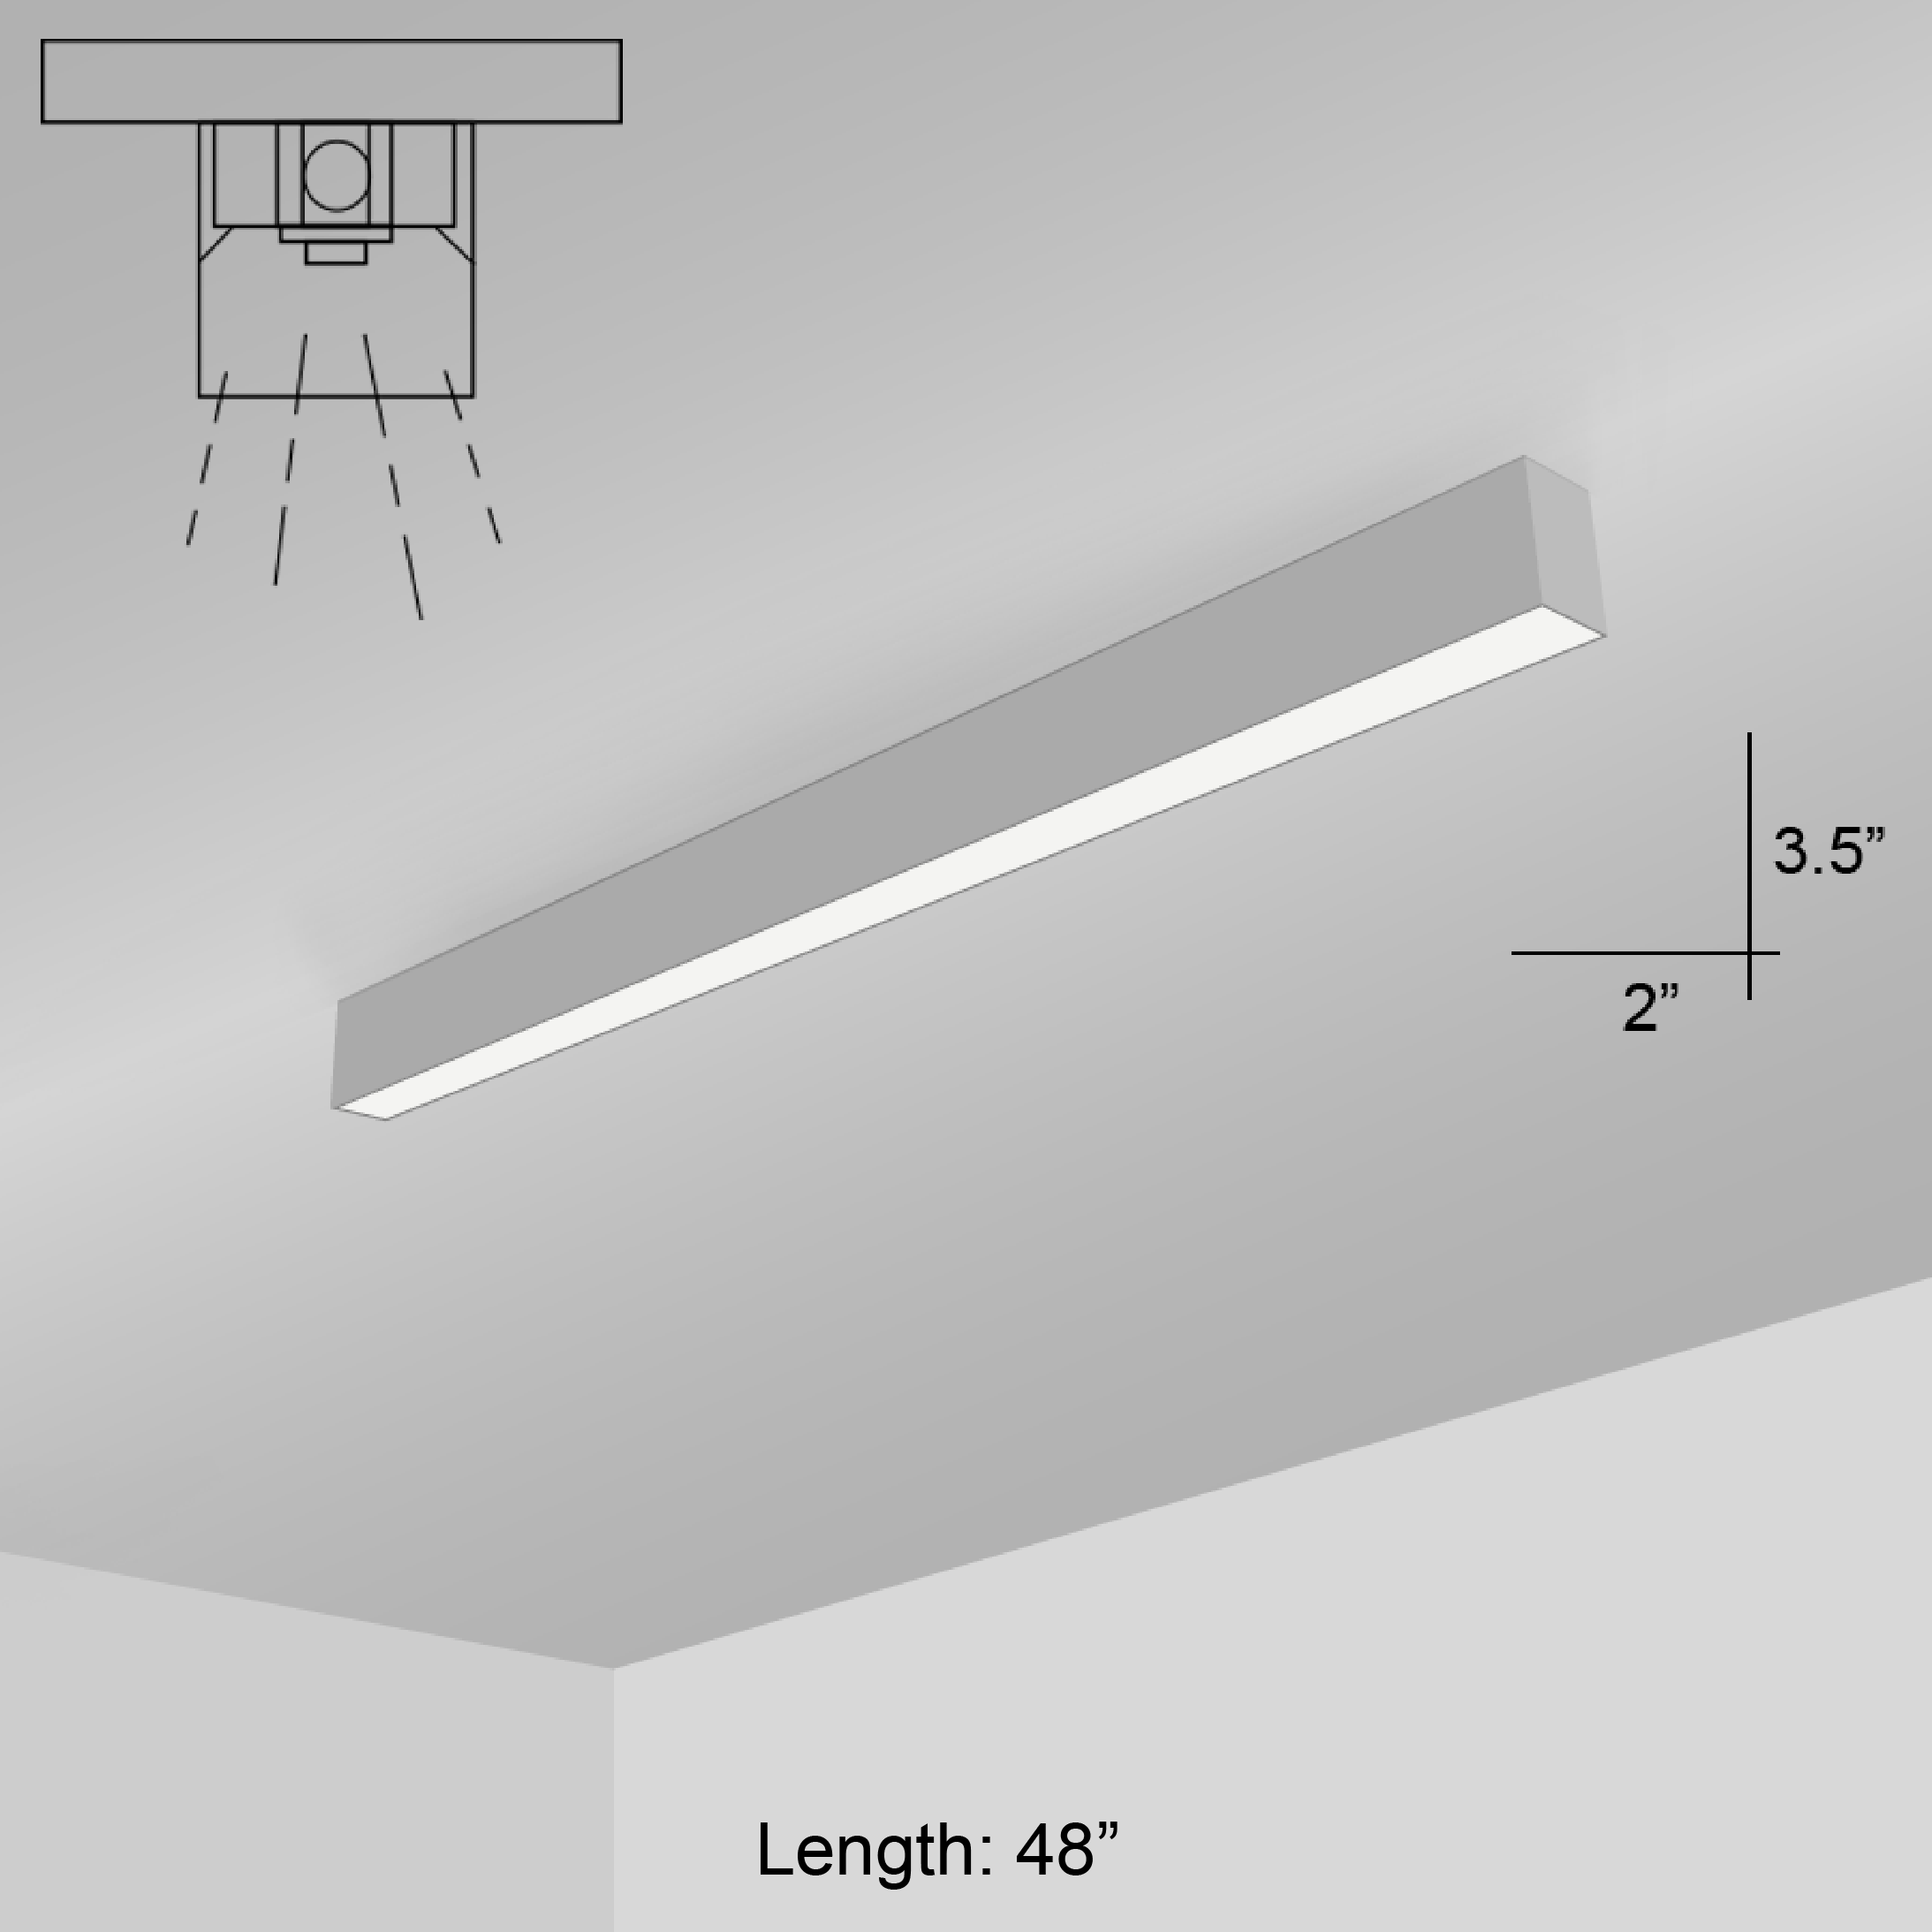 Alcon Lighting 12200-2-S RFT Series Architectural LED Linear Surface on